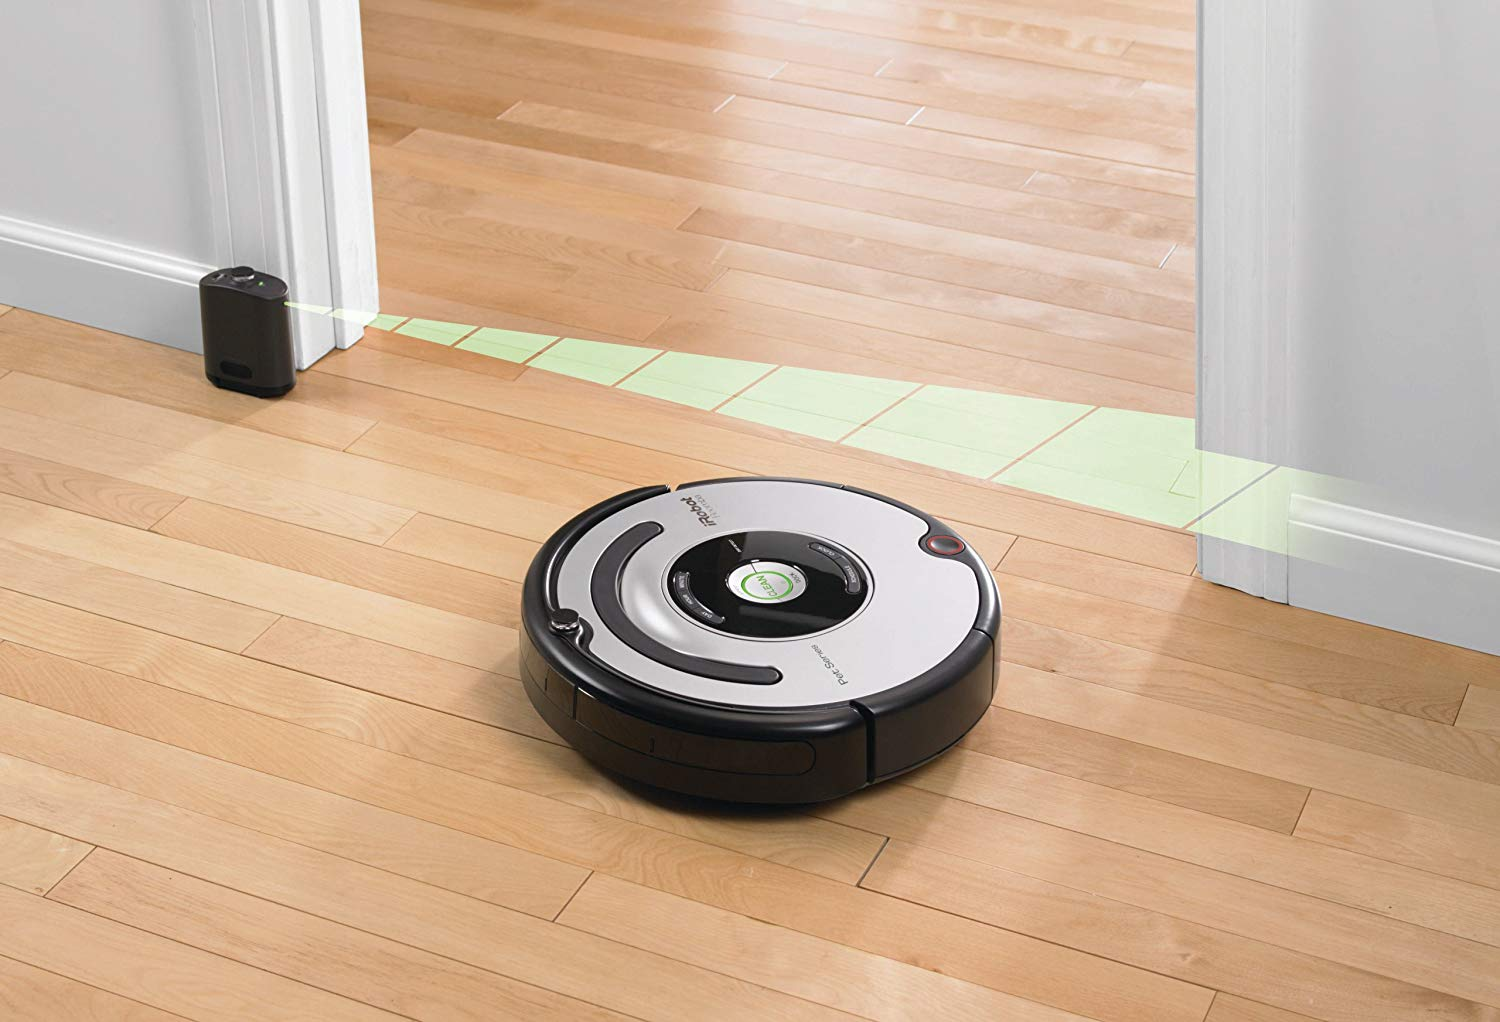 Key Features of the Roomba Pet Series